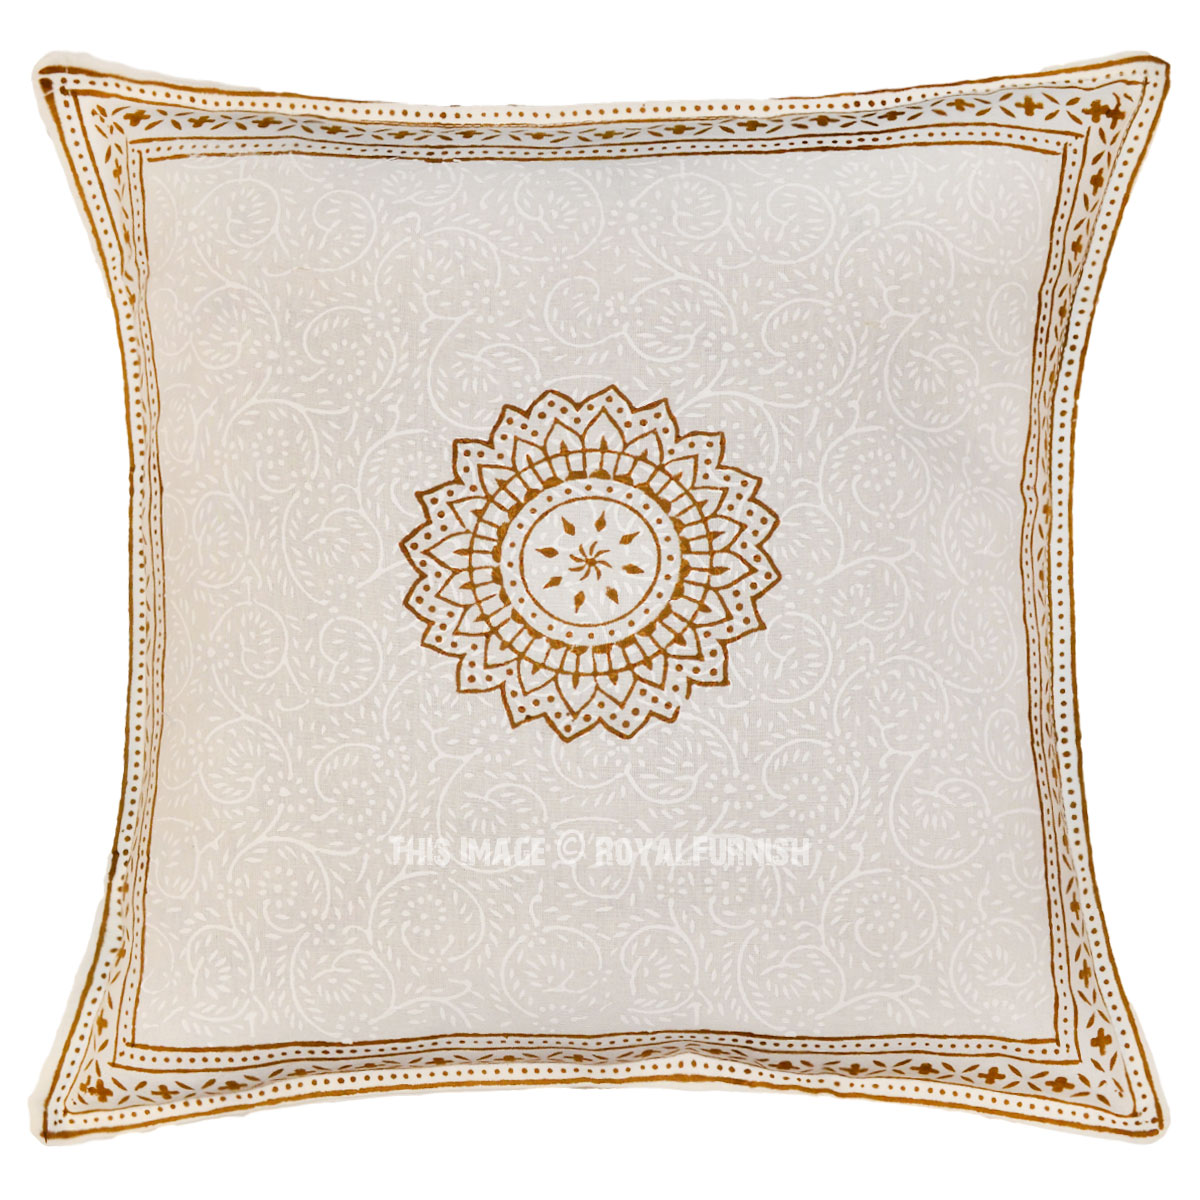 Small Brown Decorative Pillows : White & Brown Sunflower Printed Cotton Throw Pillow Sham 16X16 Inch - RoyalFurnish.com